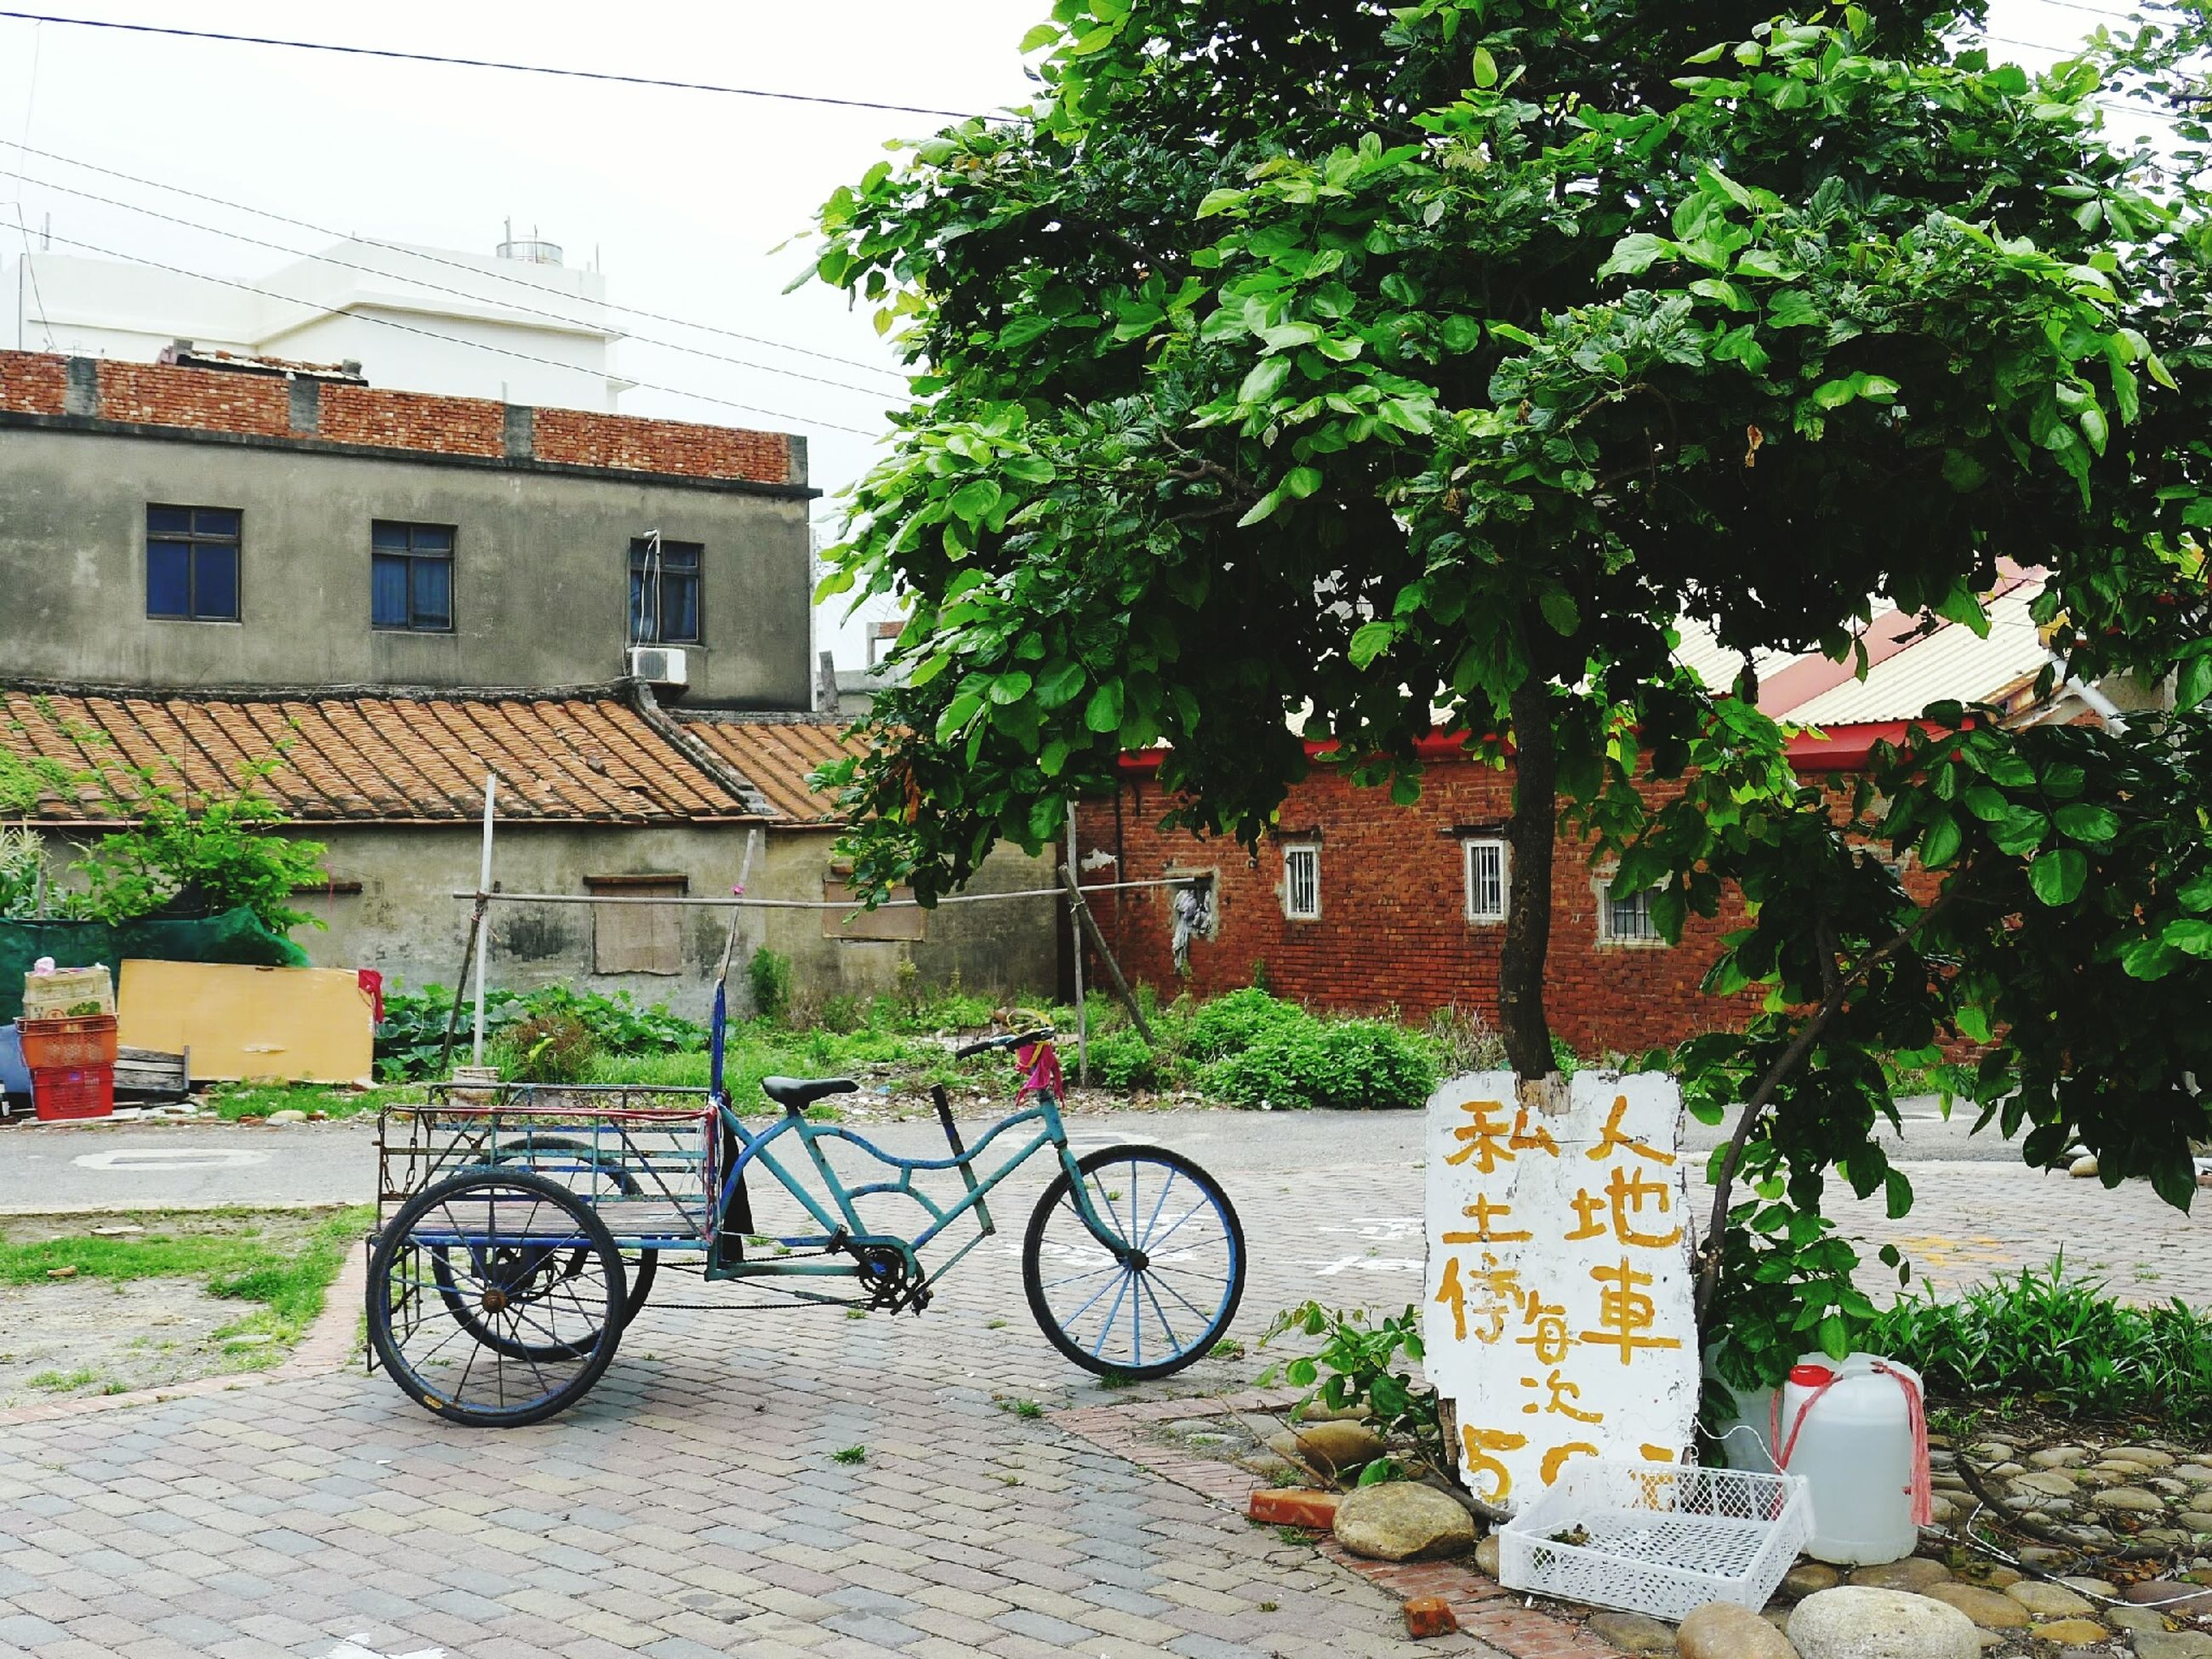 bicycle, building exterior, architecture, transportation, built structure, land vehicle, mode of transport, parked, stationary, parking, tree, house, street, residential structure, residential building, day, sidewalk, outdoors, cobblestone, city